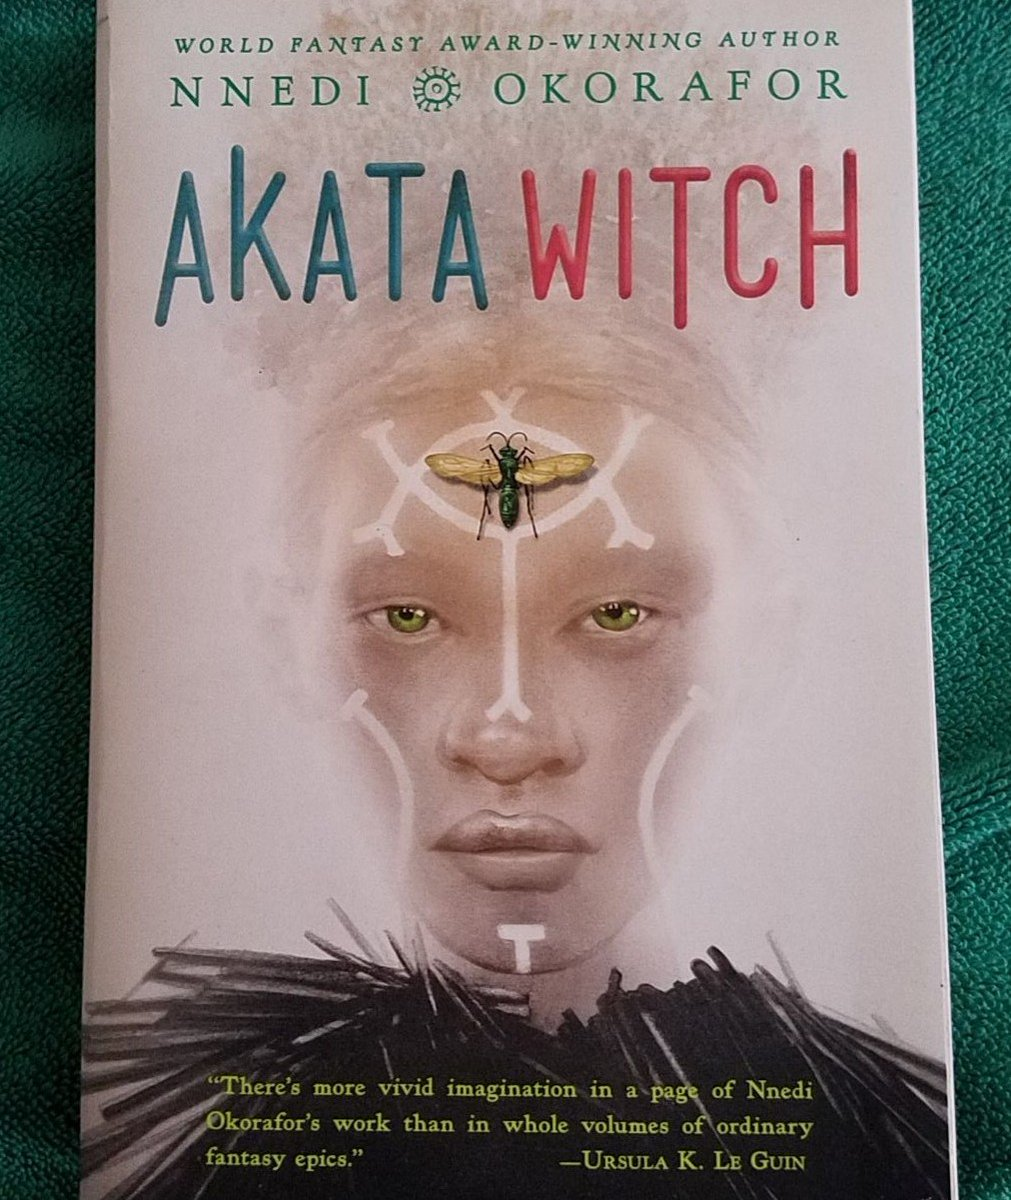 """We couldn't go to the beach this holiday weekend, but that doesn't mean we can't spend the time with a good book. Can't wait to dive into """"Akata Witch"""" by Nnedi Okorafor. What are you reading? . #BookIt #GetLit #HappyReading #HolidayWeekend #SciFi #Books #Read #July4thpic.twitter.com/tVHDIRPUM4"""